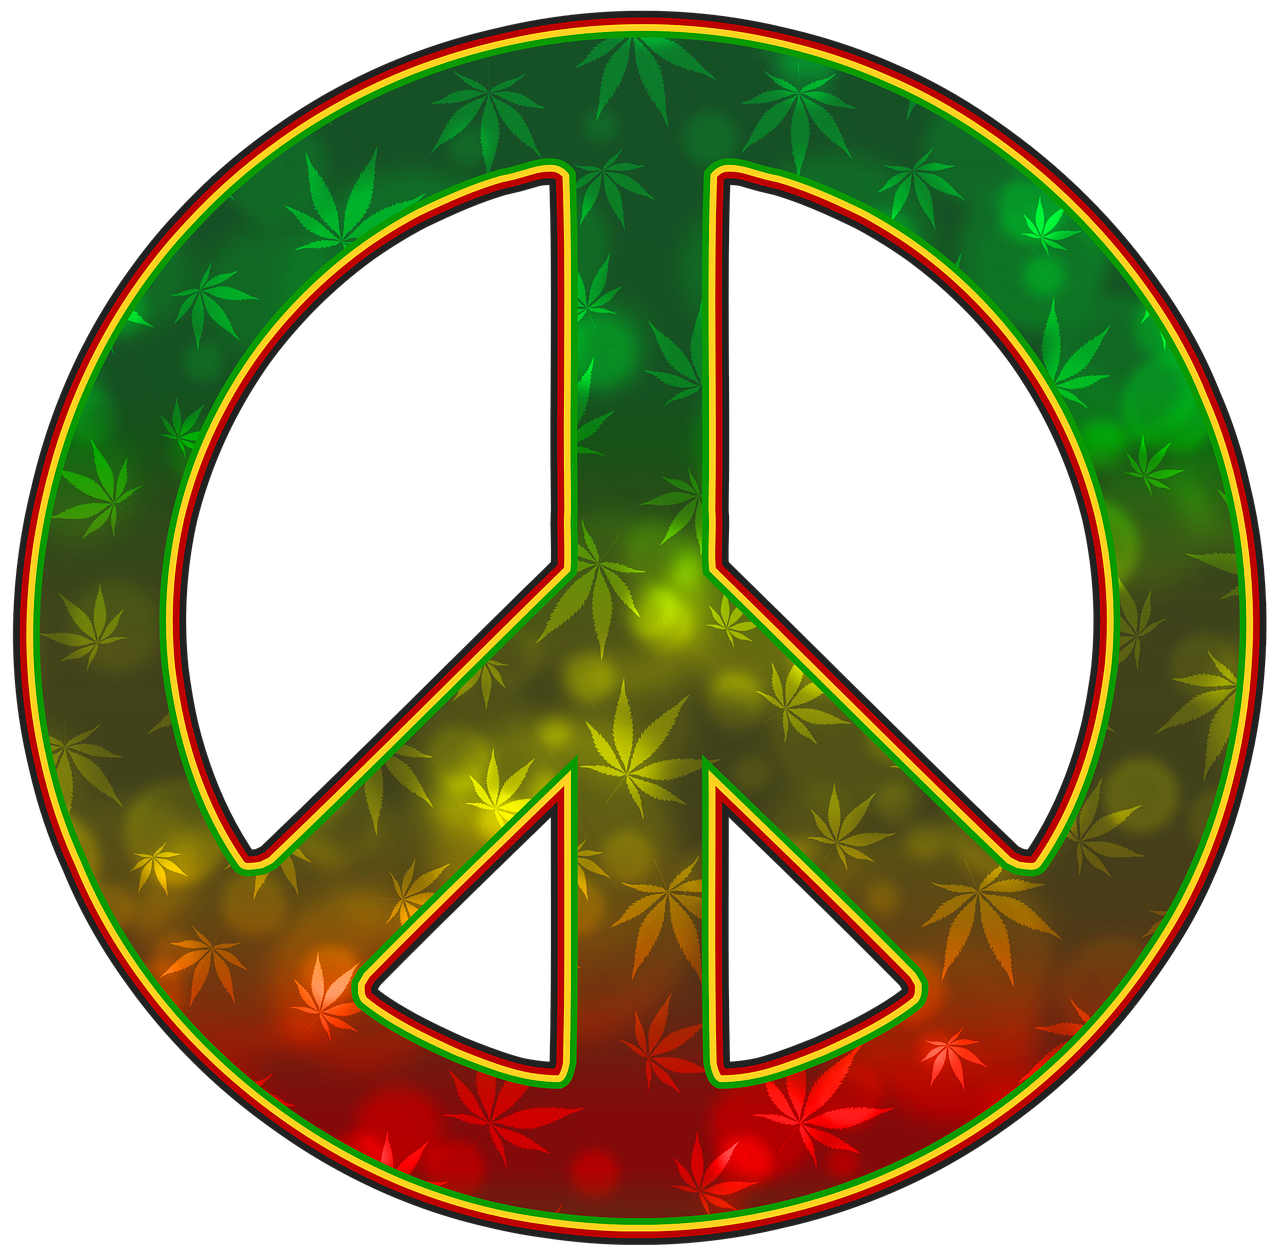 peace-3323139_1280.png